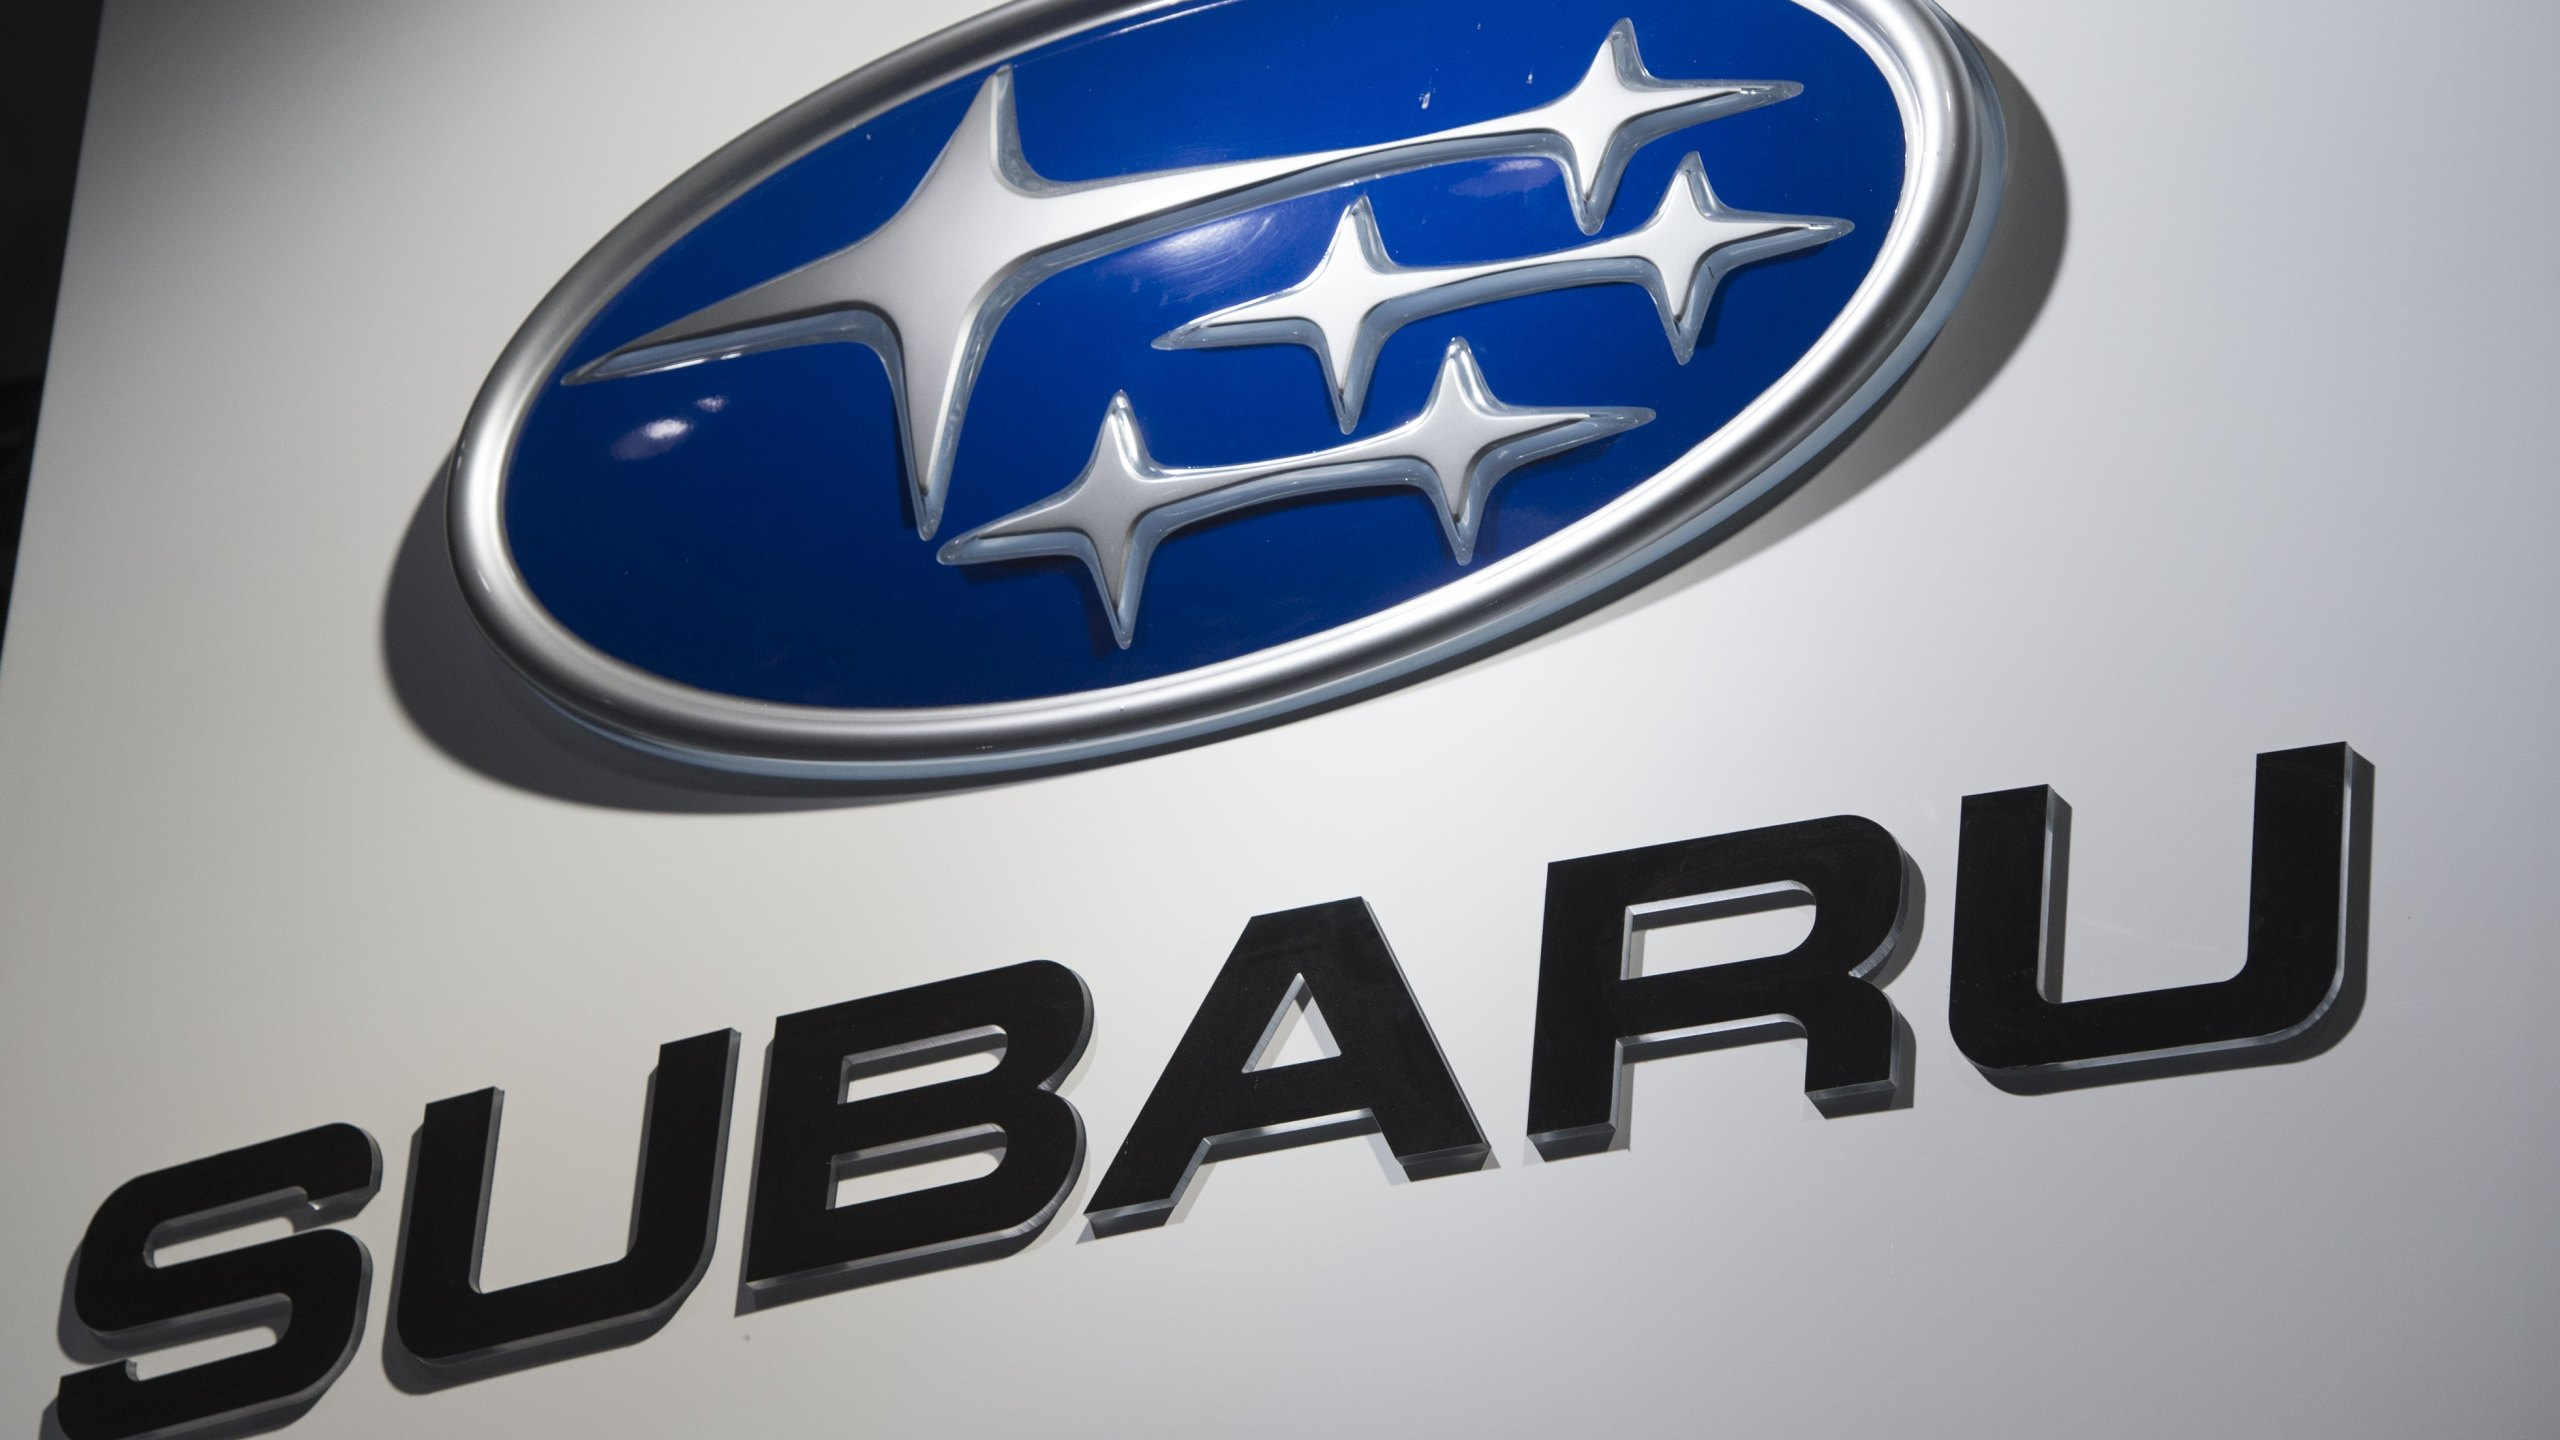 The Subaru logo is seen during the 2017 North American International Auto Show in Detroit, Michigan on Jan. 10, 2017. (Credit: SAUL LOEB/AFP/Getty Images)